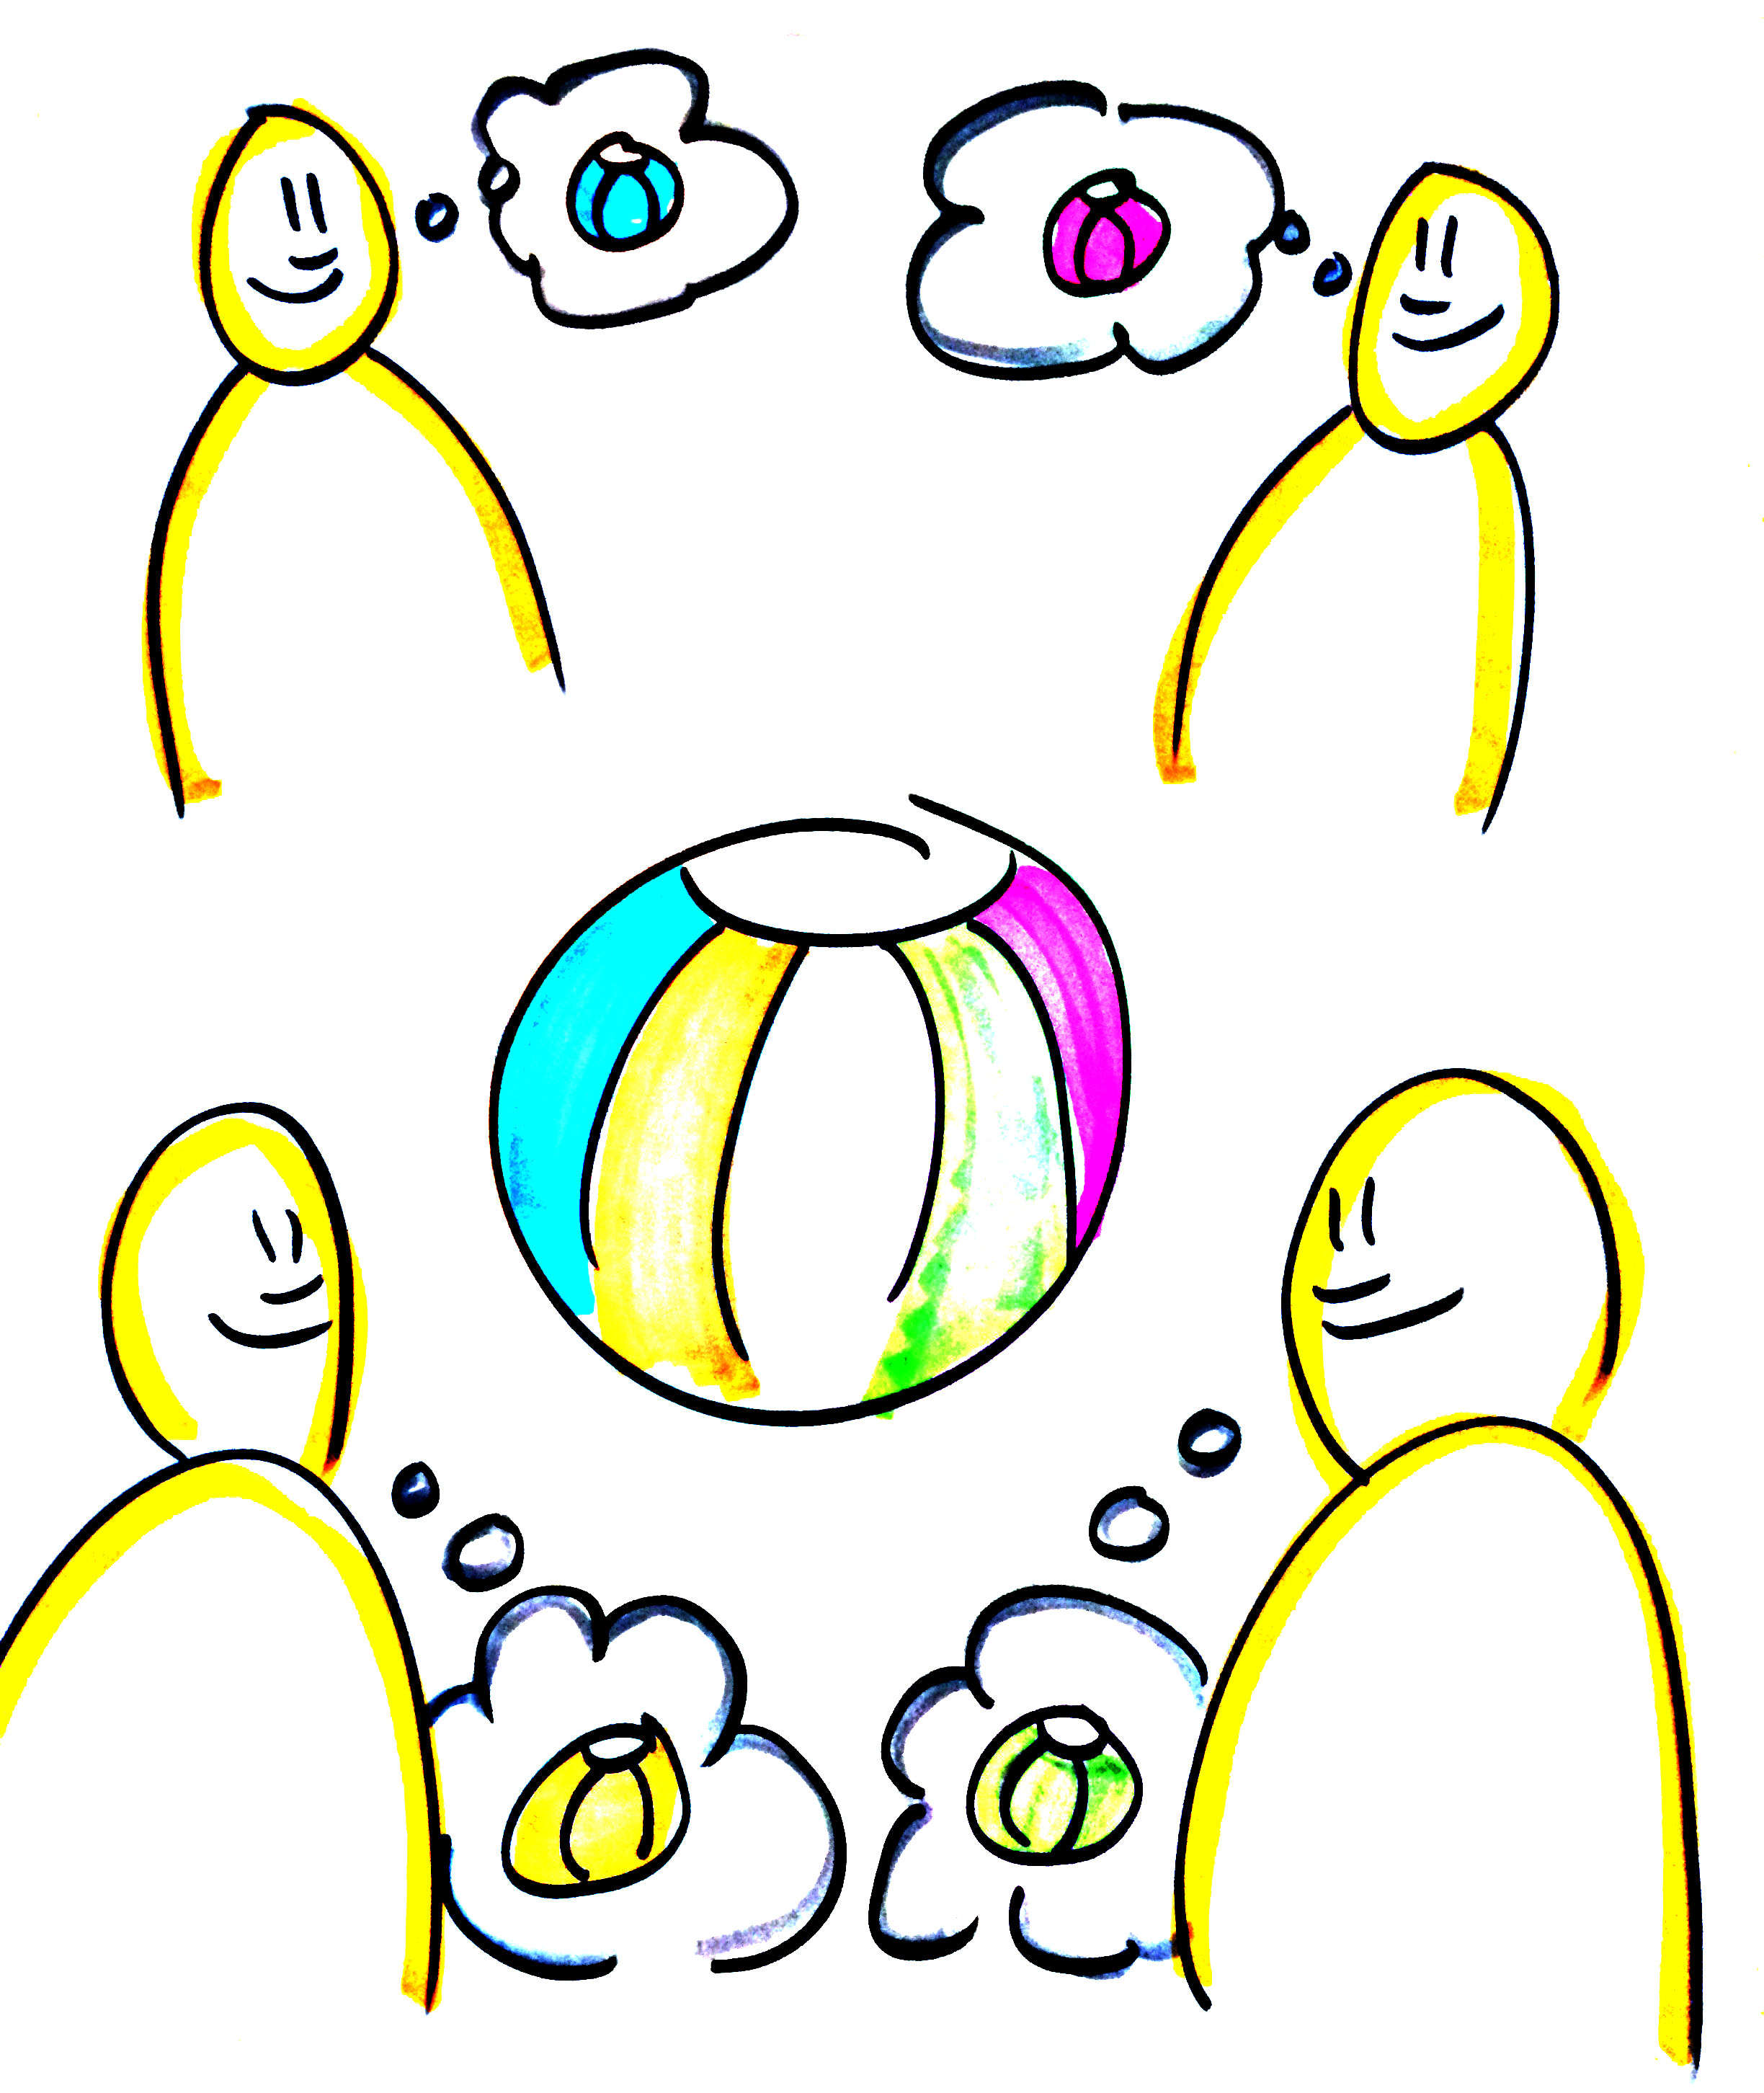 """One's """"reality"""" is simply their unique perspective. Any situation is like a beachball: based on where I'm standing, the beachball may appear yellow to me. Another person might look at the same beachball and see it as red. My senses and my experience tell me that beachball is yellow, but this other person is saying it's red, therefore I'm right and he's wrong. Instead, allow for the possibility that we may BOTH be right: open yourself up to the context of the bigger picture."""